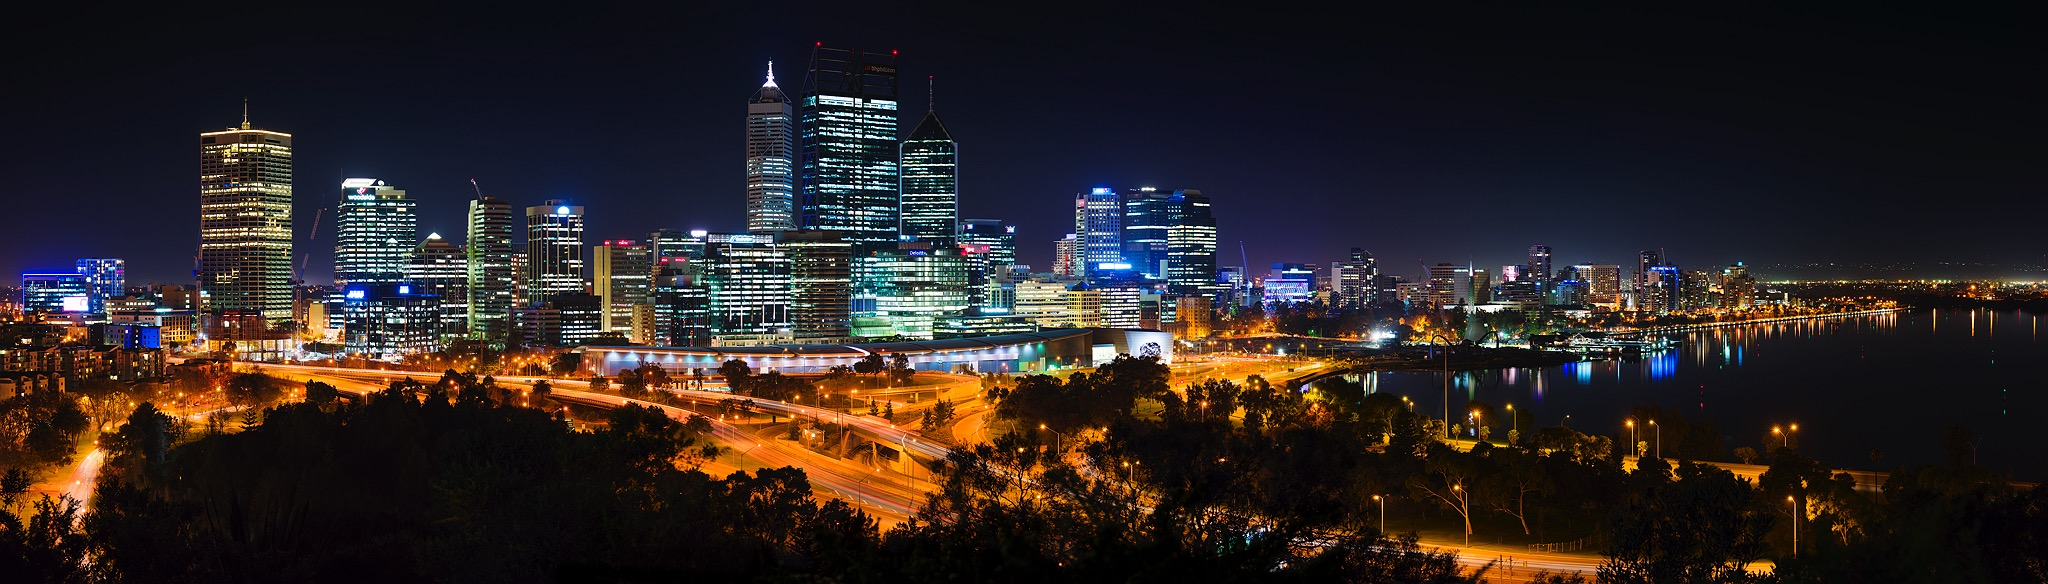 perth-city-from-kings-park-2015